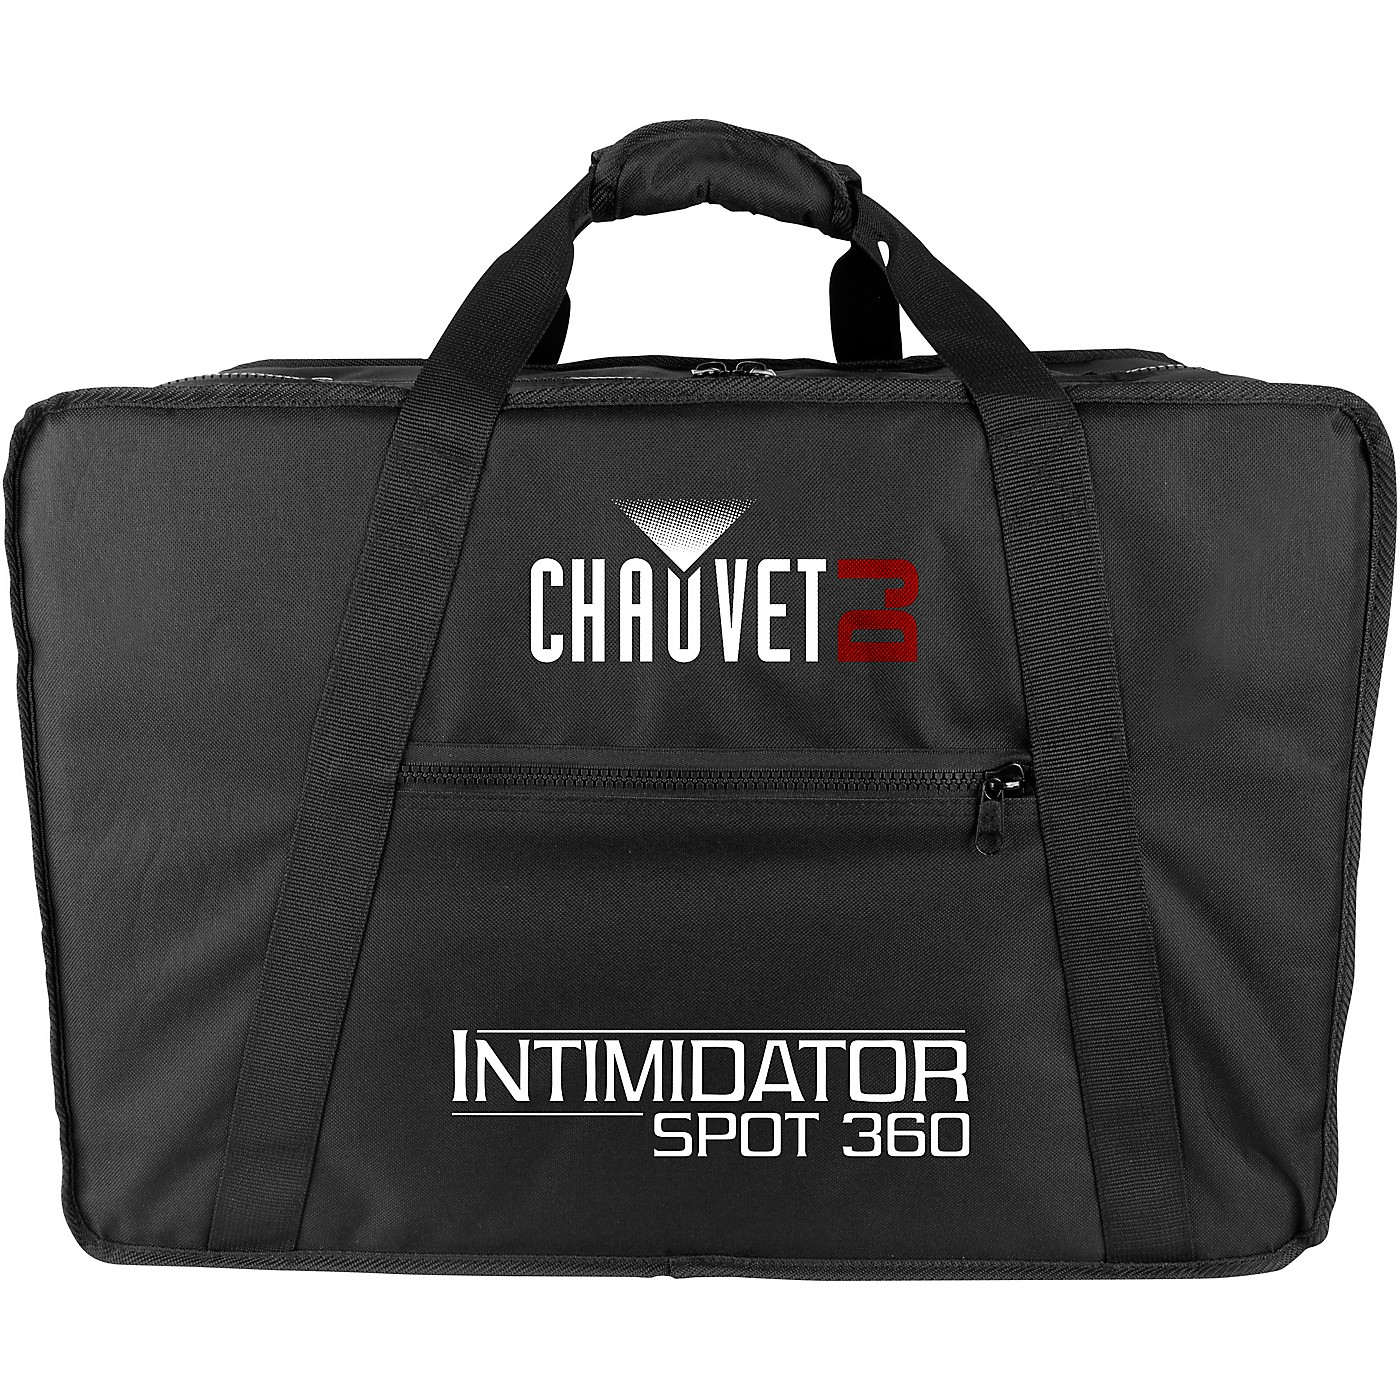 CHAUVET DJ CHS-360 Carry Case for the Intimidator Spot 360 thumbnail